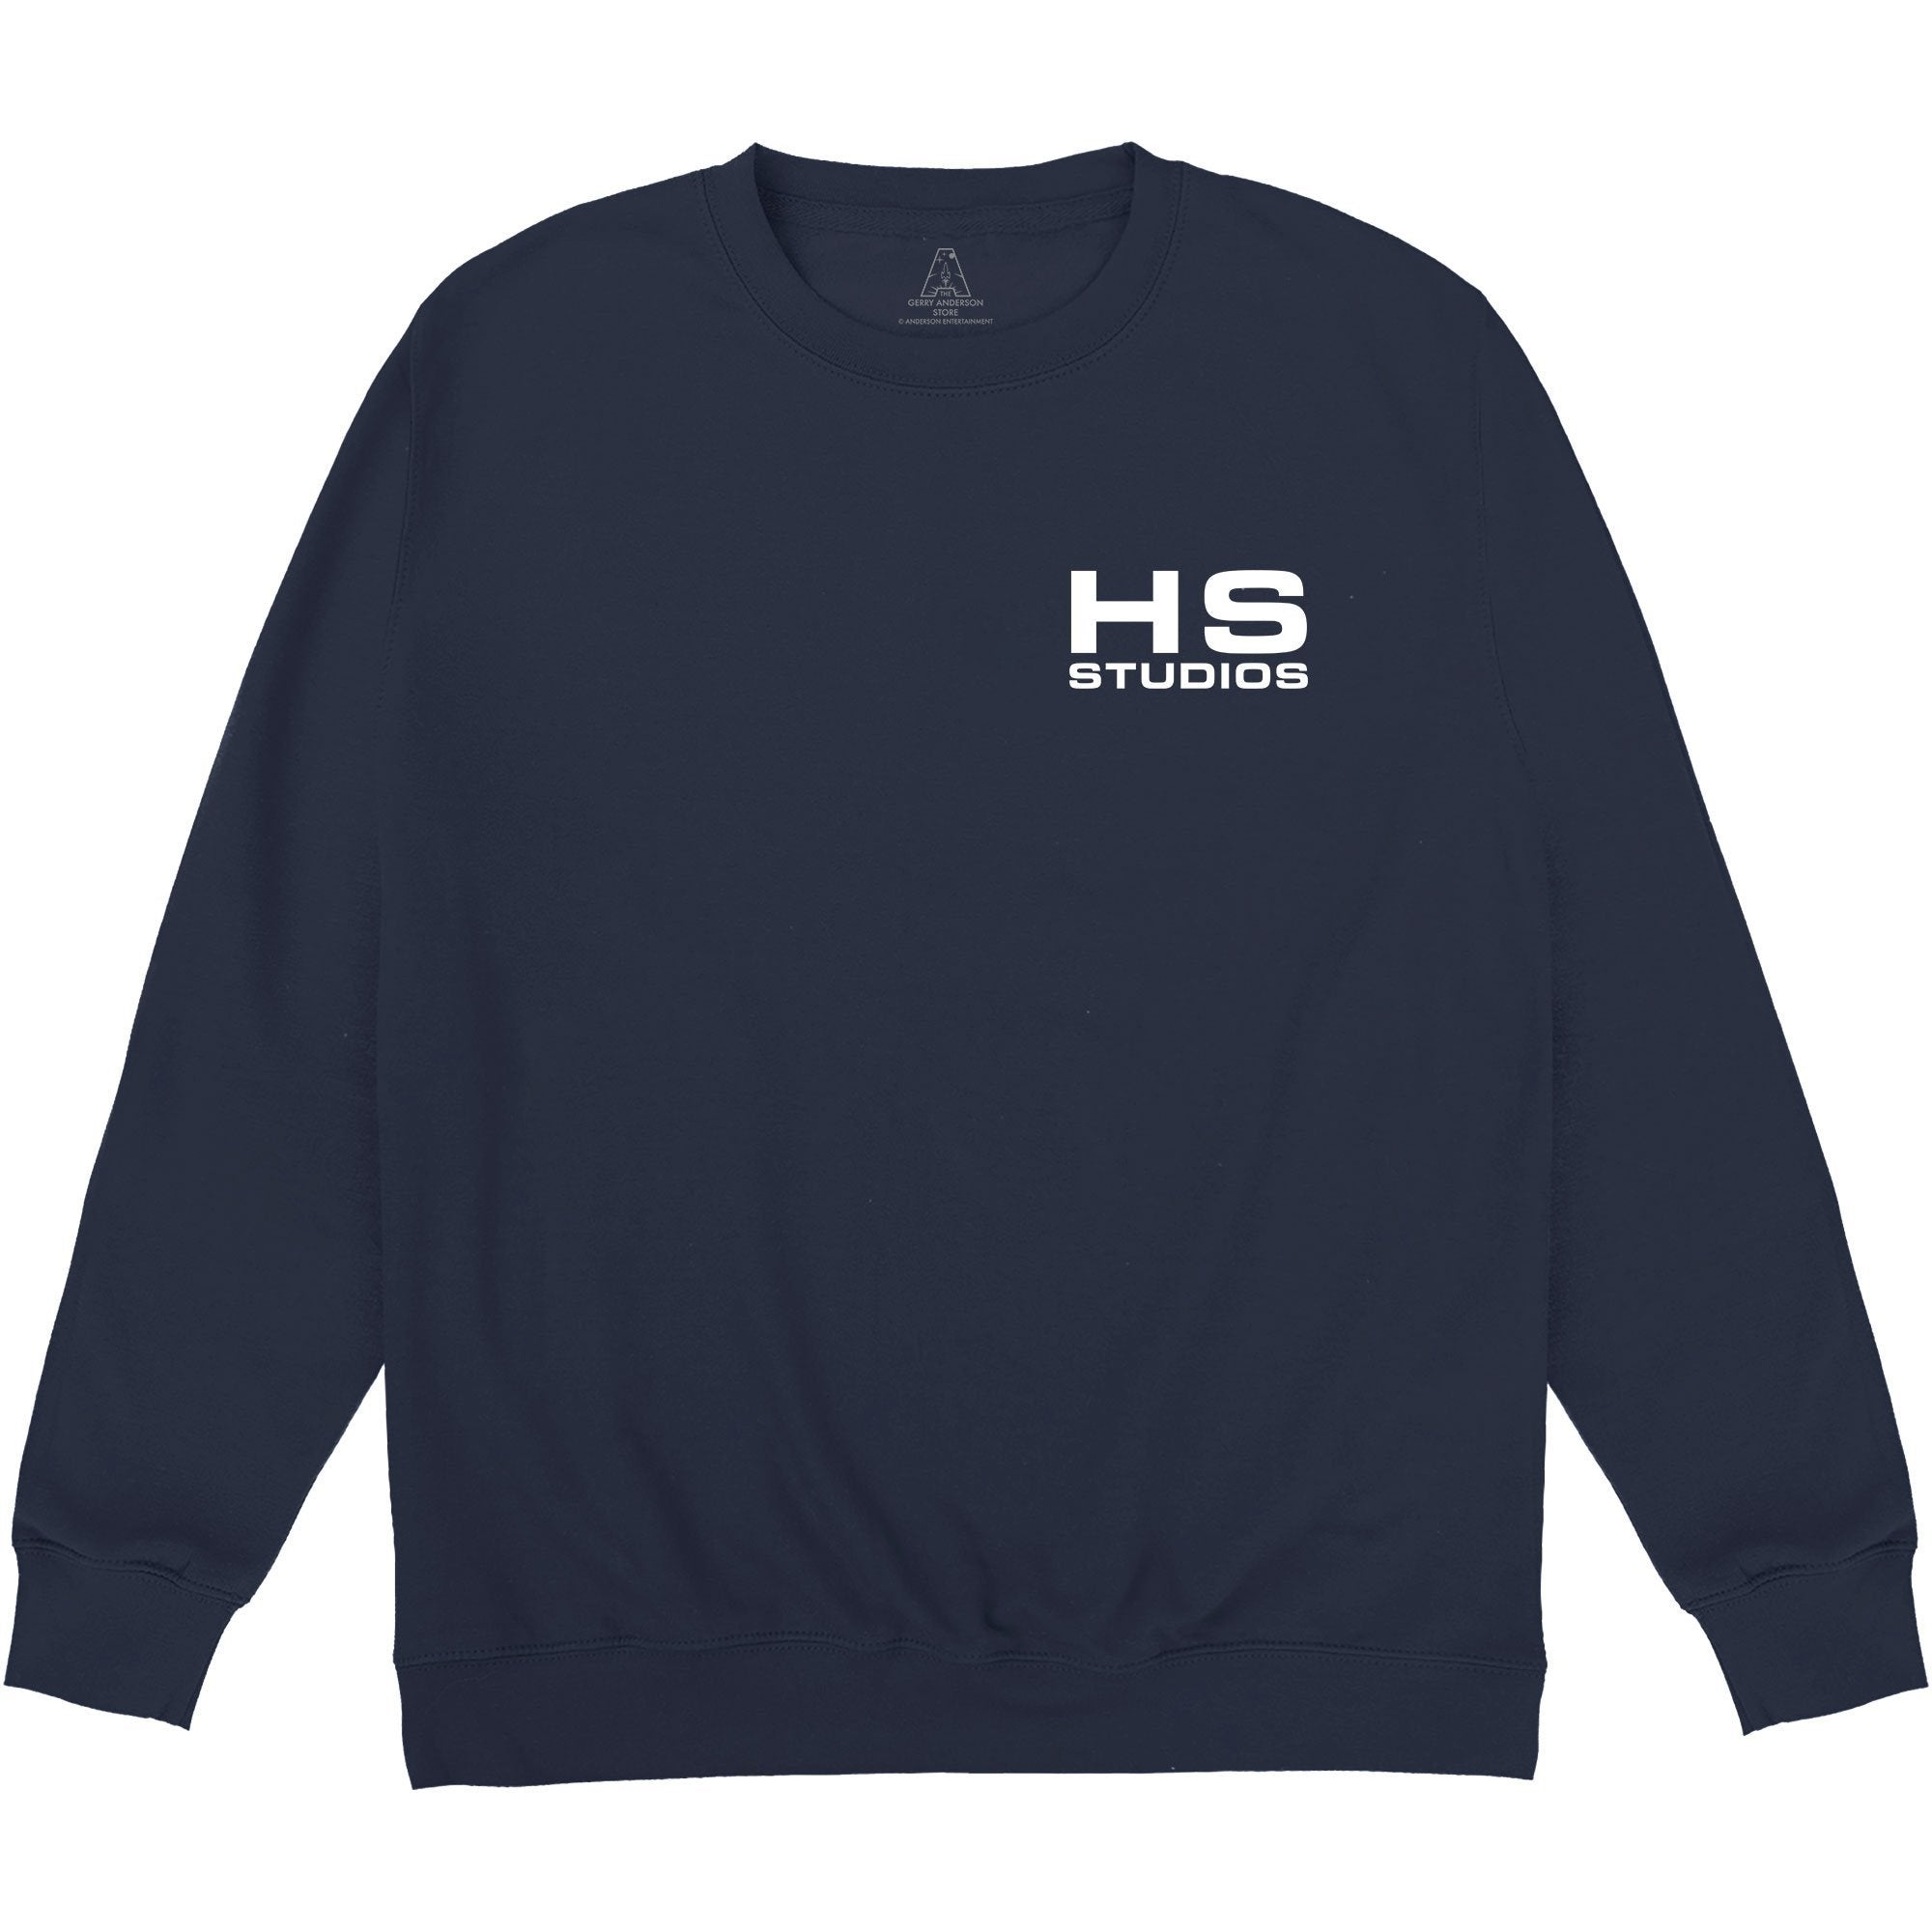 Harlington-Straker Studios Logo Sweatshirt - The Gerry Anderson Store